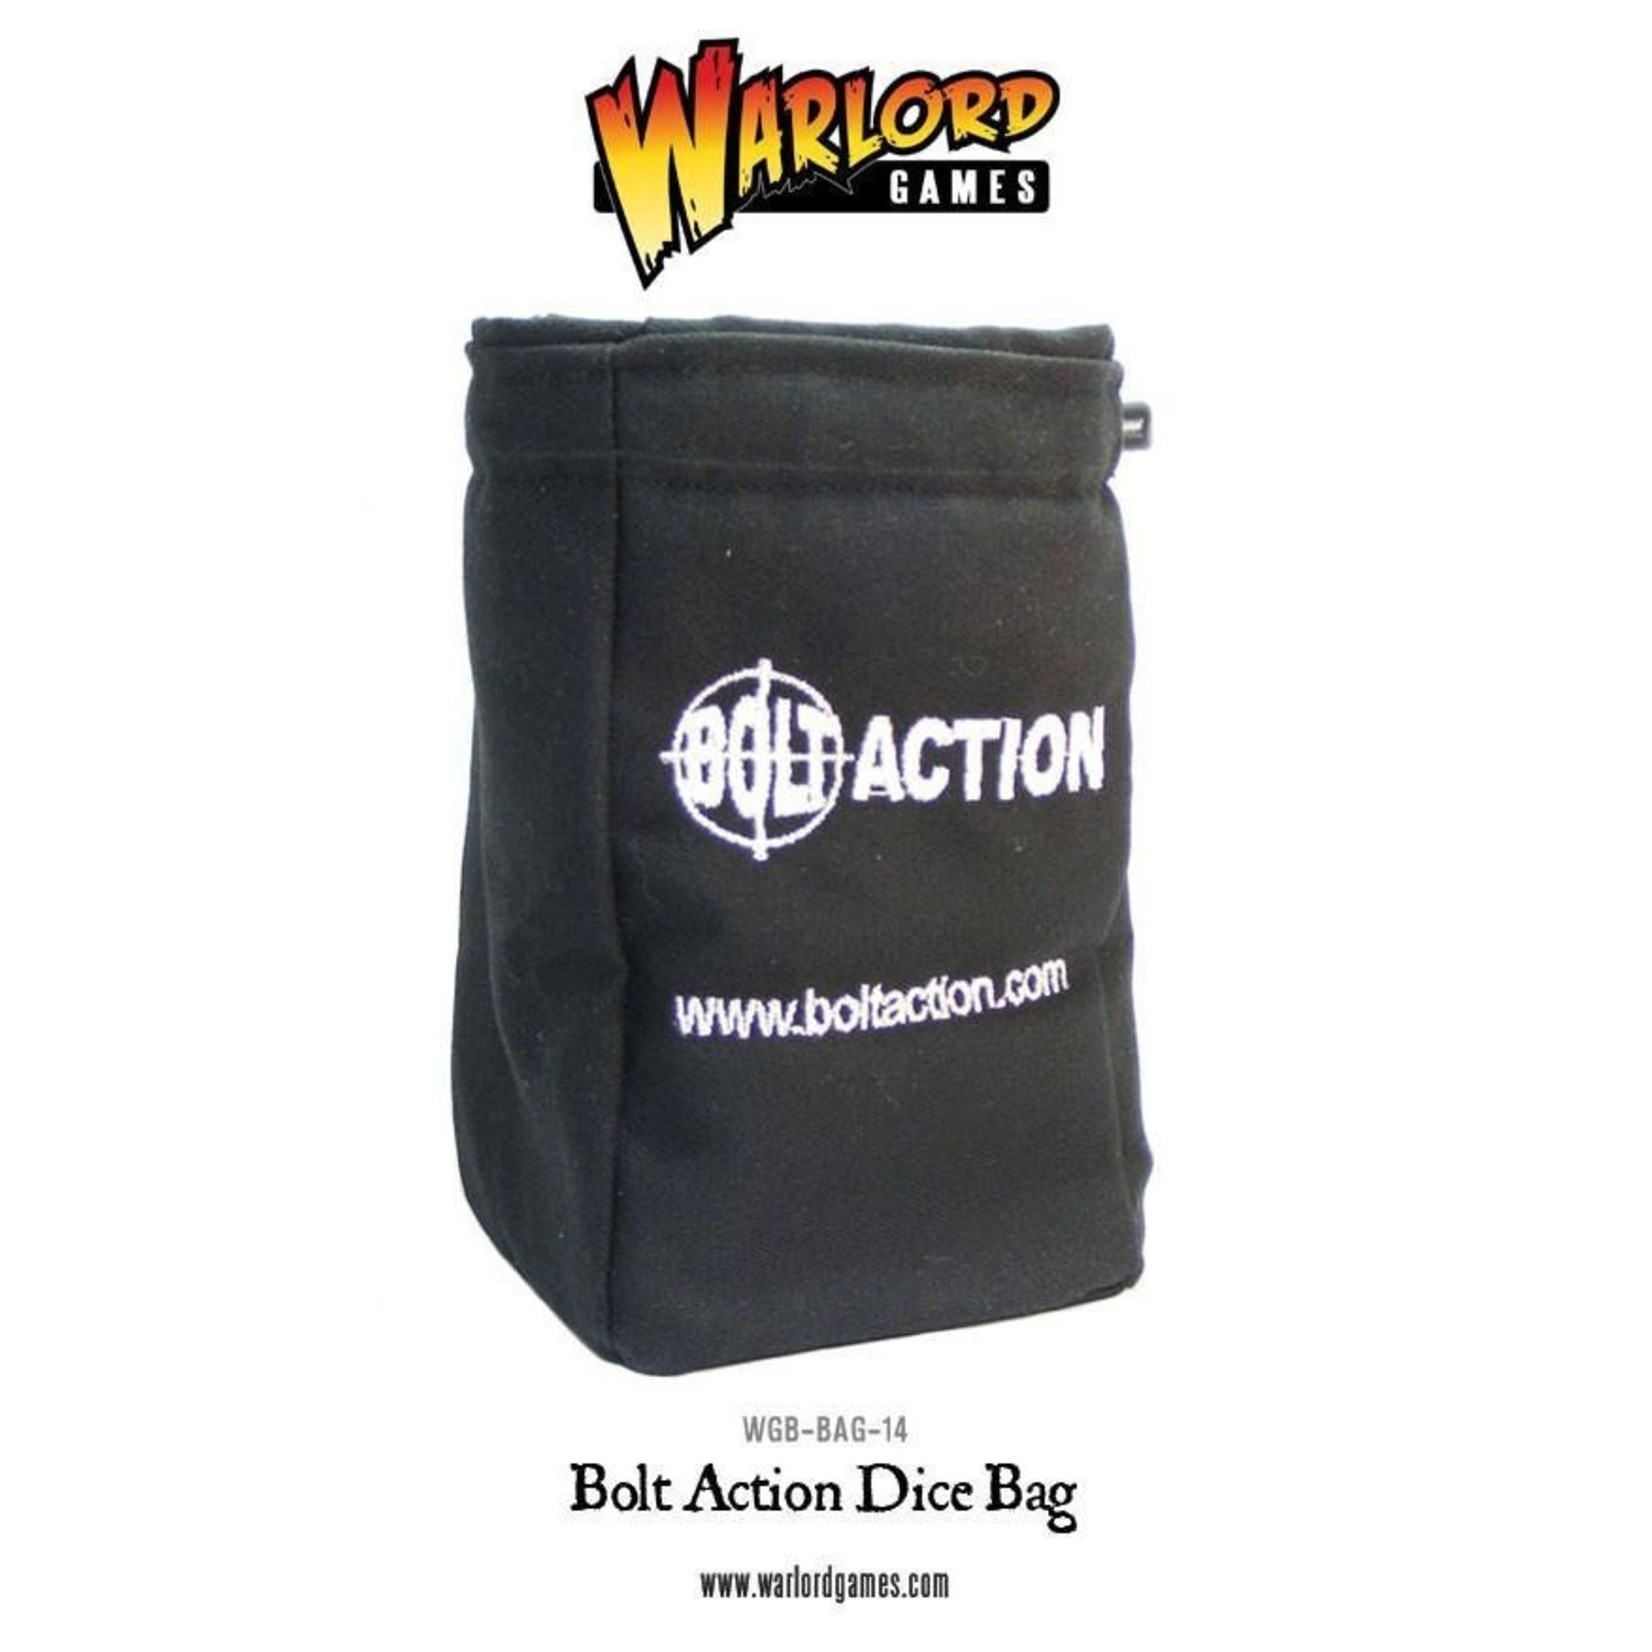 Warlord Games Bolt Action Dice Bag